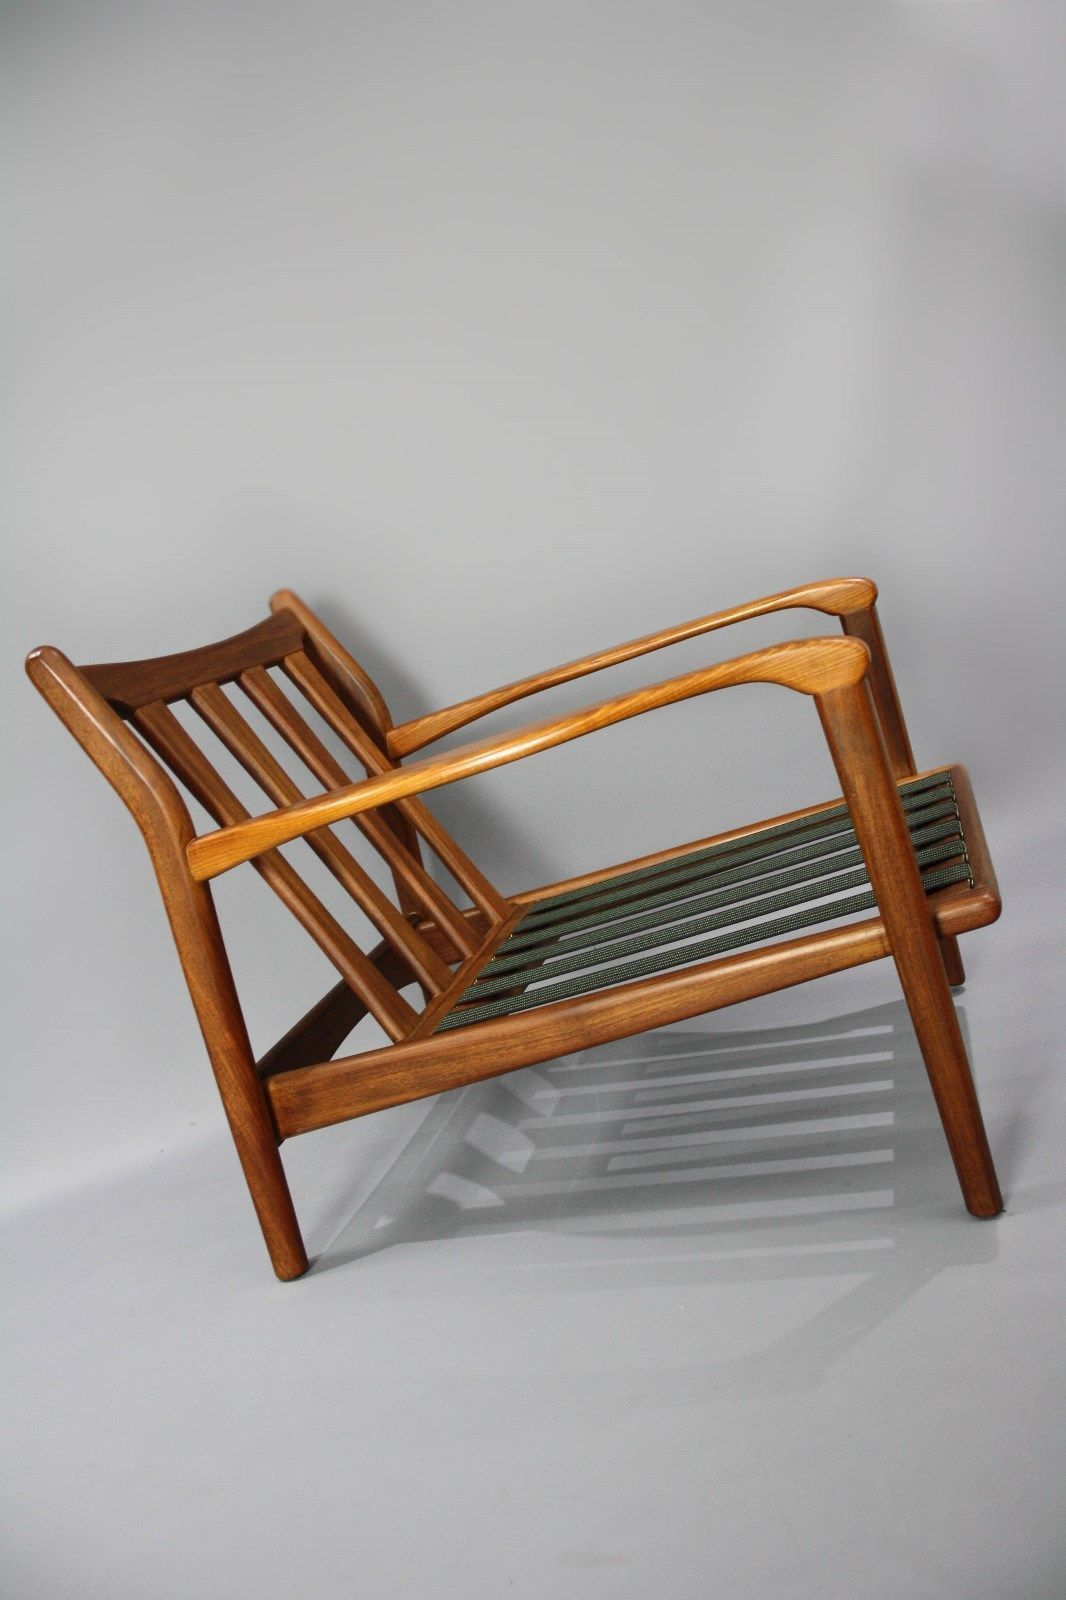 Price reduced sturdy wooden vintage rocking chair made in yugoslavia - Mid Century Toothill Heals Uk Original Teak Armchair Retro Vintage Lounge Chair Danish Era 360